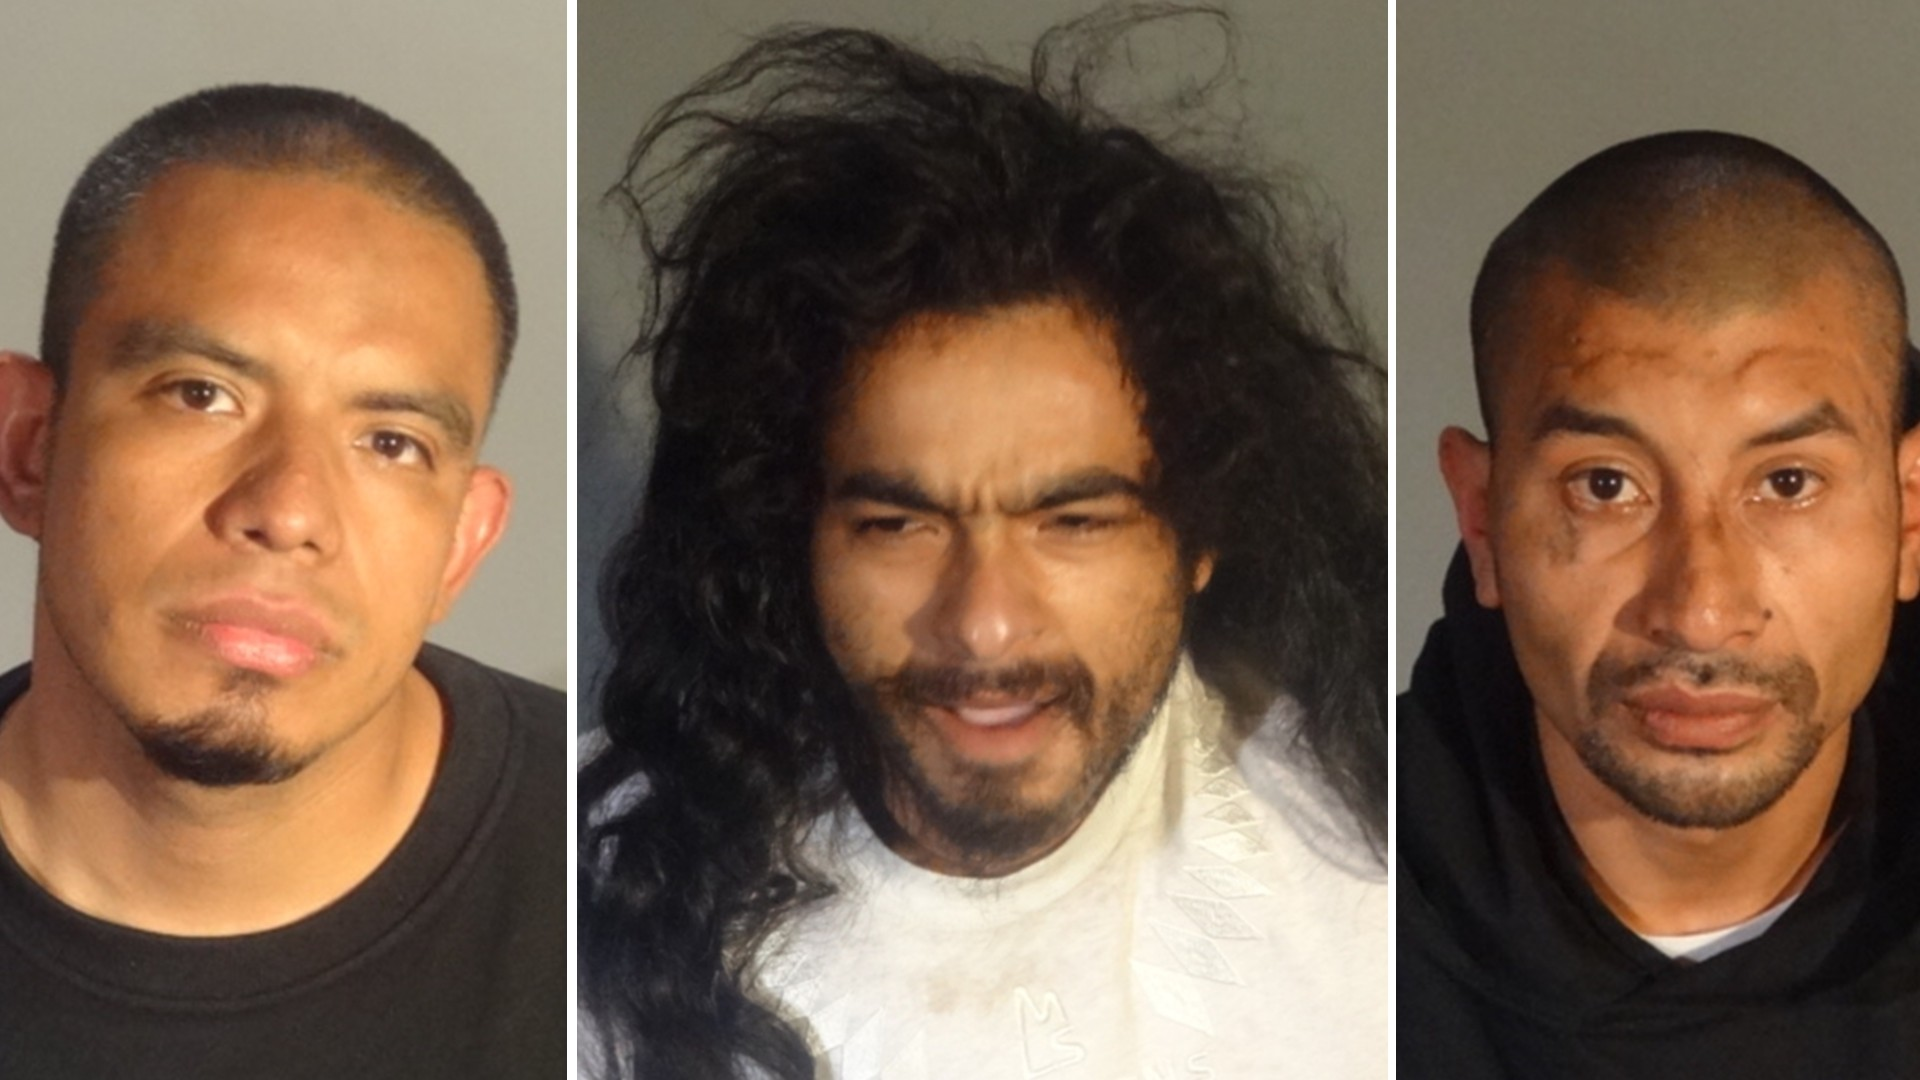 Miguel Eduardo Barrientos, Eduardo Manzo Rangel and Rudy Leonel Barrios are seen in booking photos released by Santa Monica police on March 29, 2021.